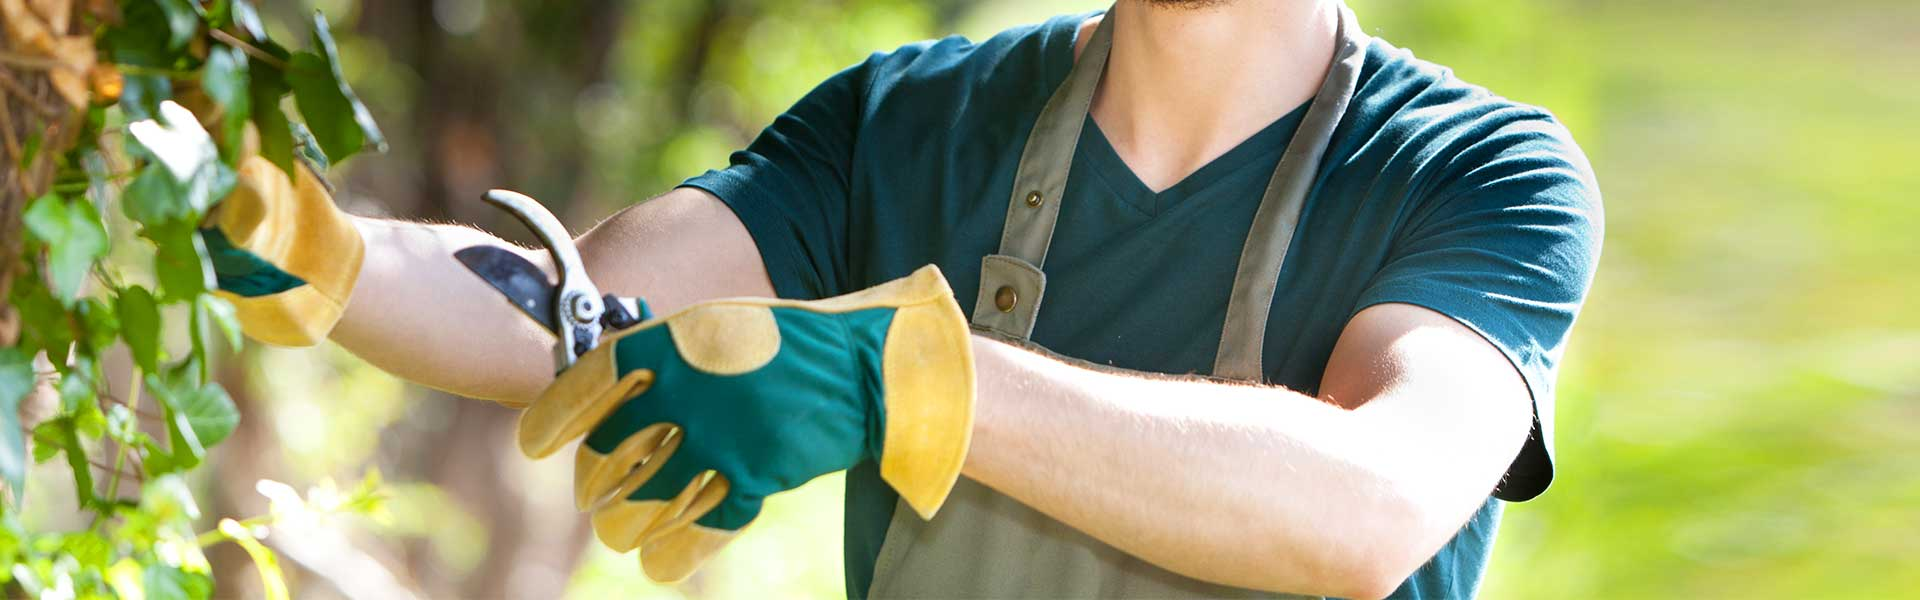 The best gardening services and top quality lawn care services!